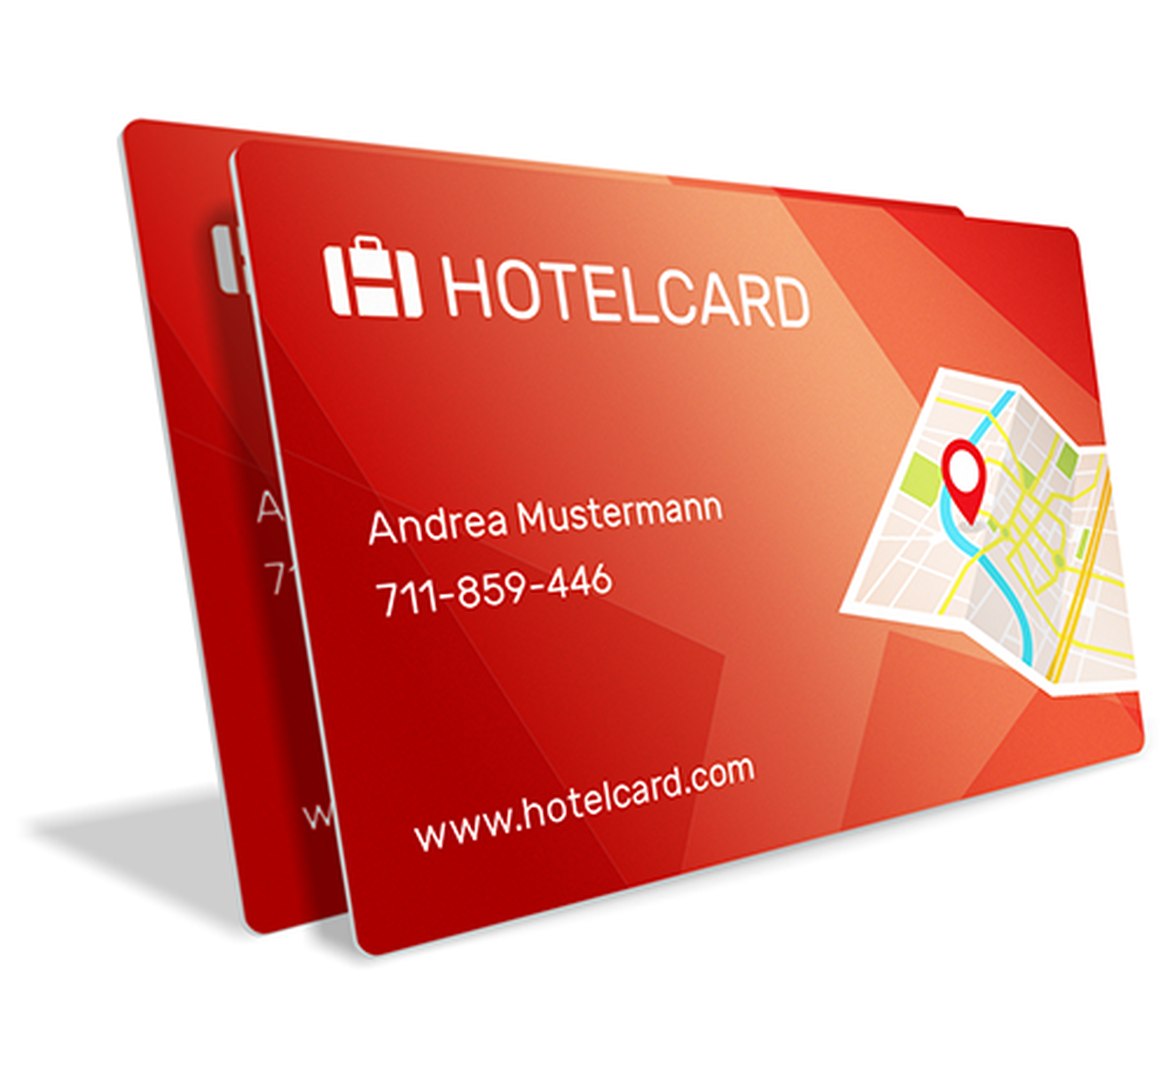 Hotelcard Membership card